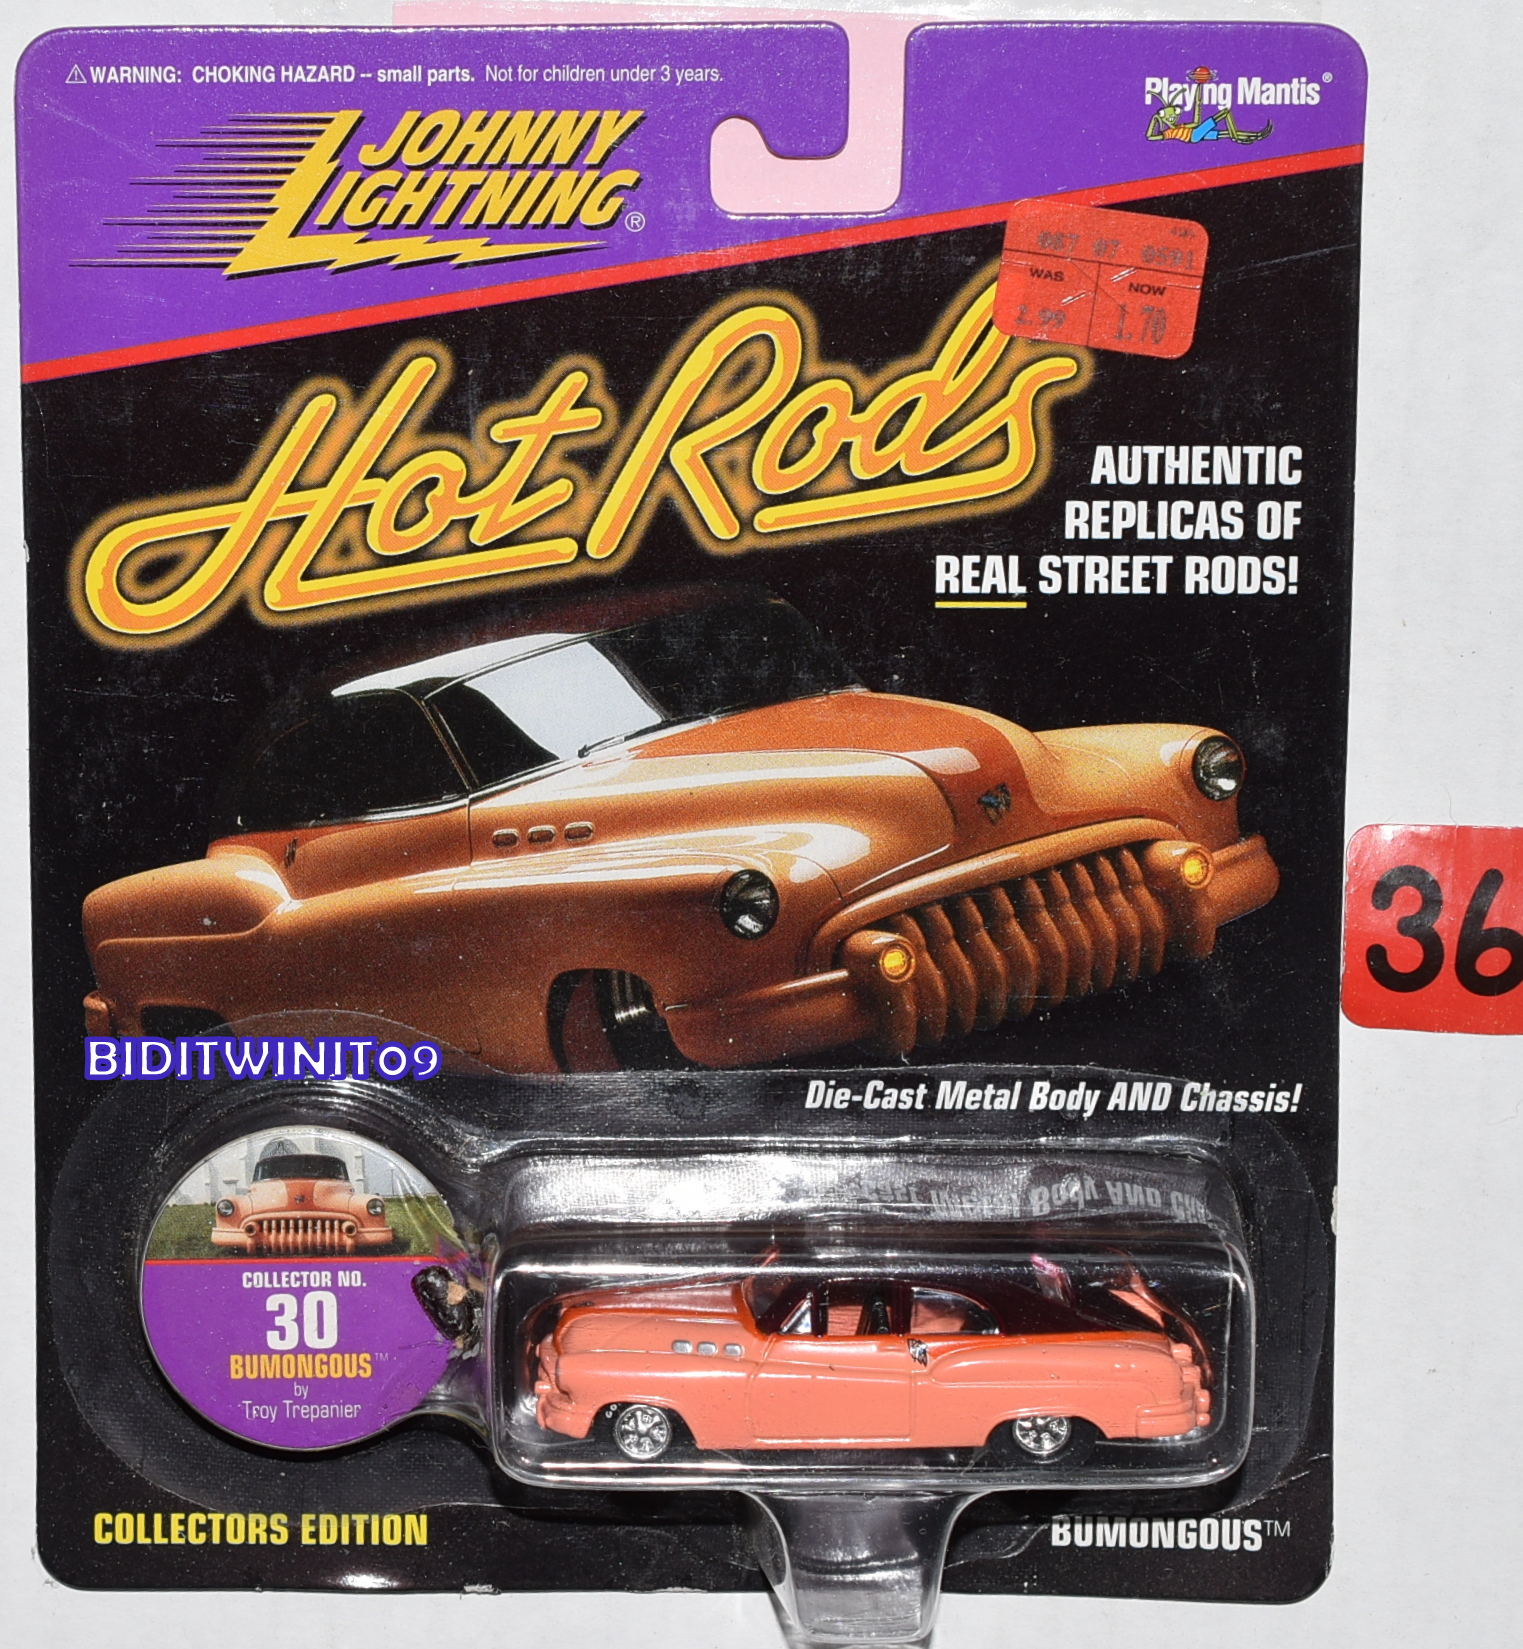 1997 JOHNNY LIGHTNING HOT RODS BUMONGOUS #30 LIMITED EDITION E+